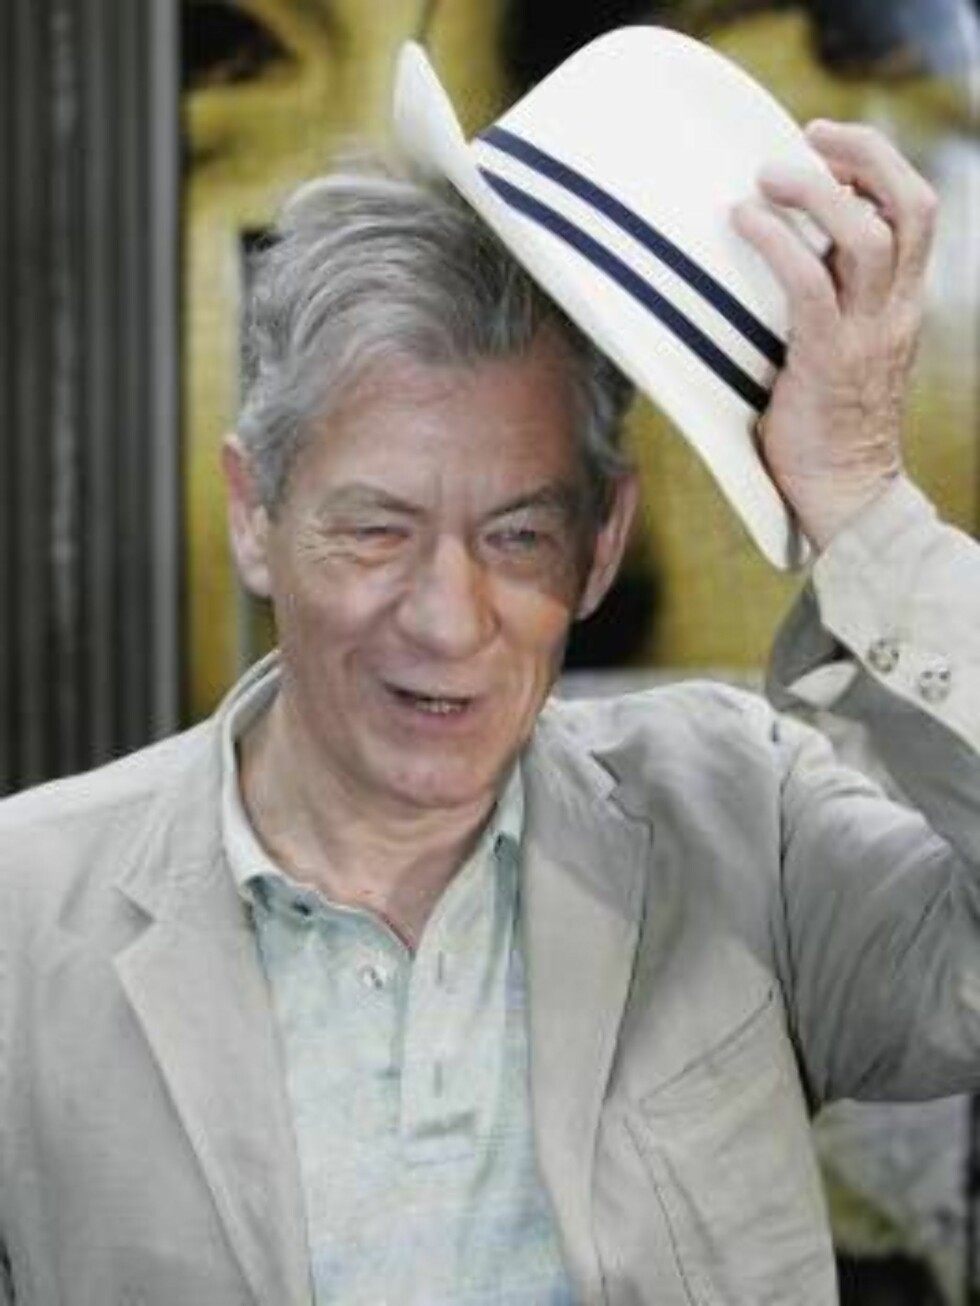 LONDON - MAY 16:  Actor Sir Ian McKellen doffs his hat during a photocall for new film The Da Vinci Code at Eurostar's Waterloo International Terminal on May 16, 2006 in London, England. At the photocall a new Eurostar Train was named 'The Da Vinci Code' Foto: All Over Press